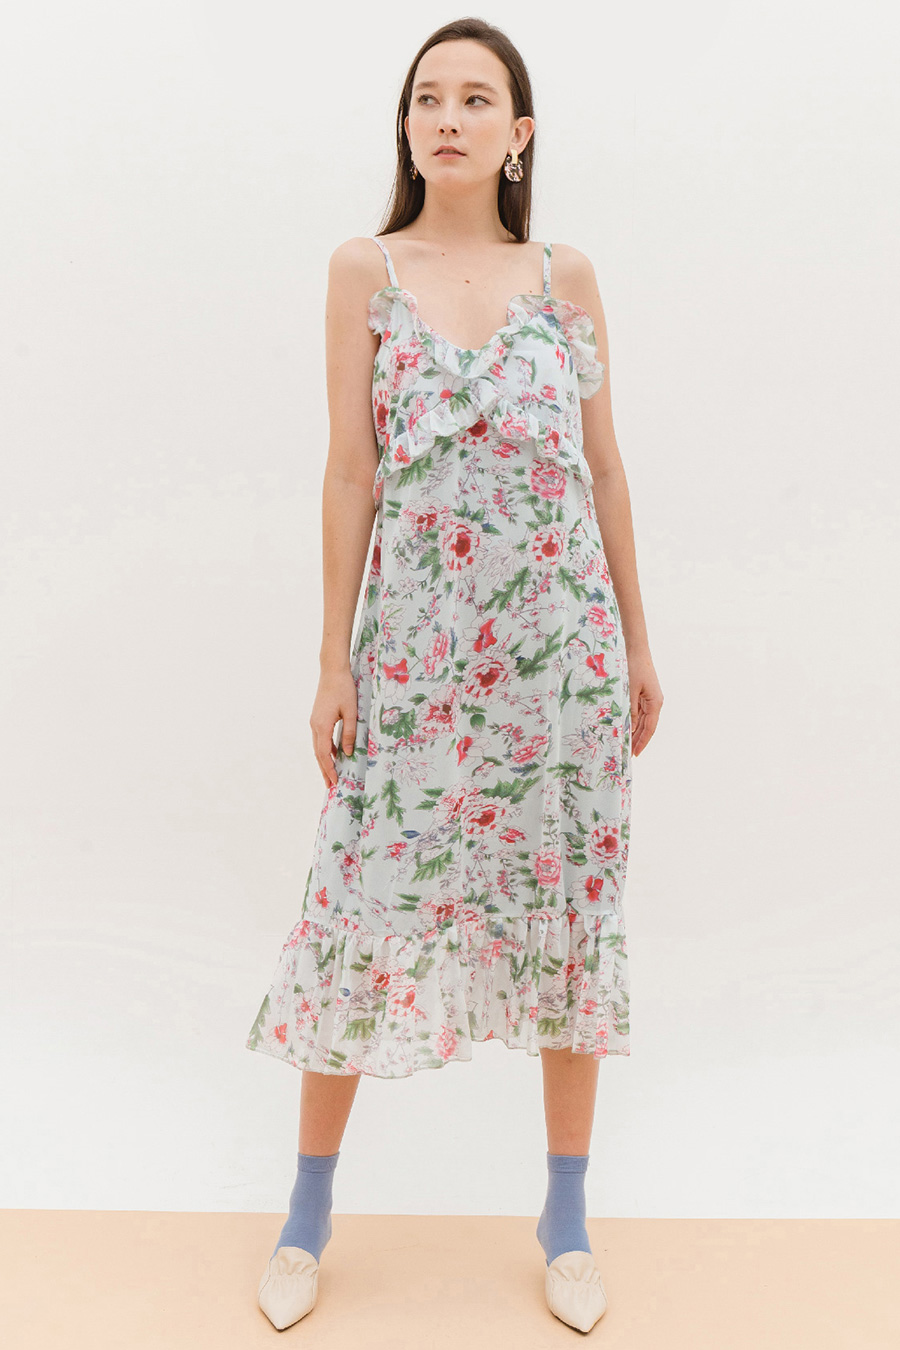 ANDORRA DRESS - DAINTY